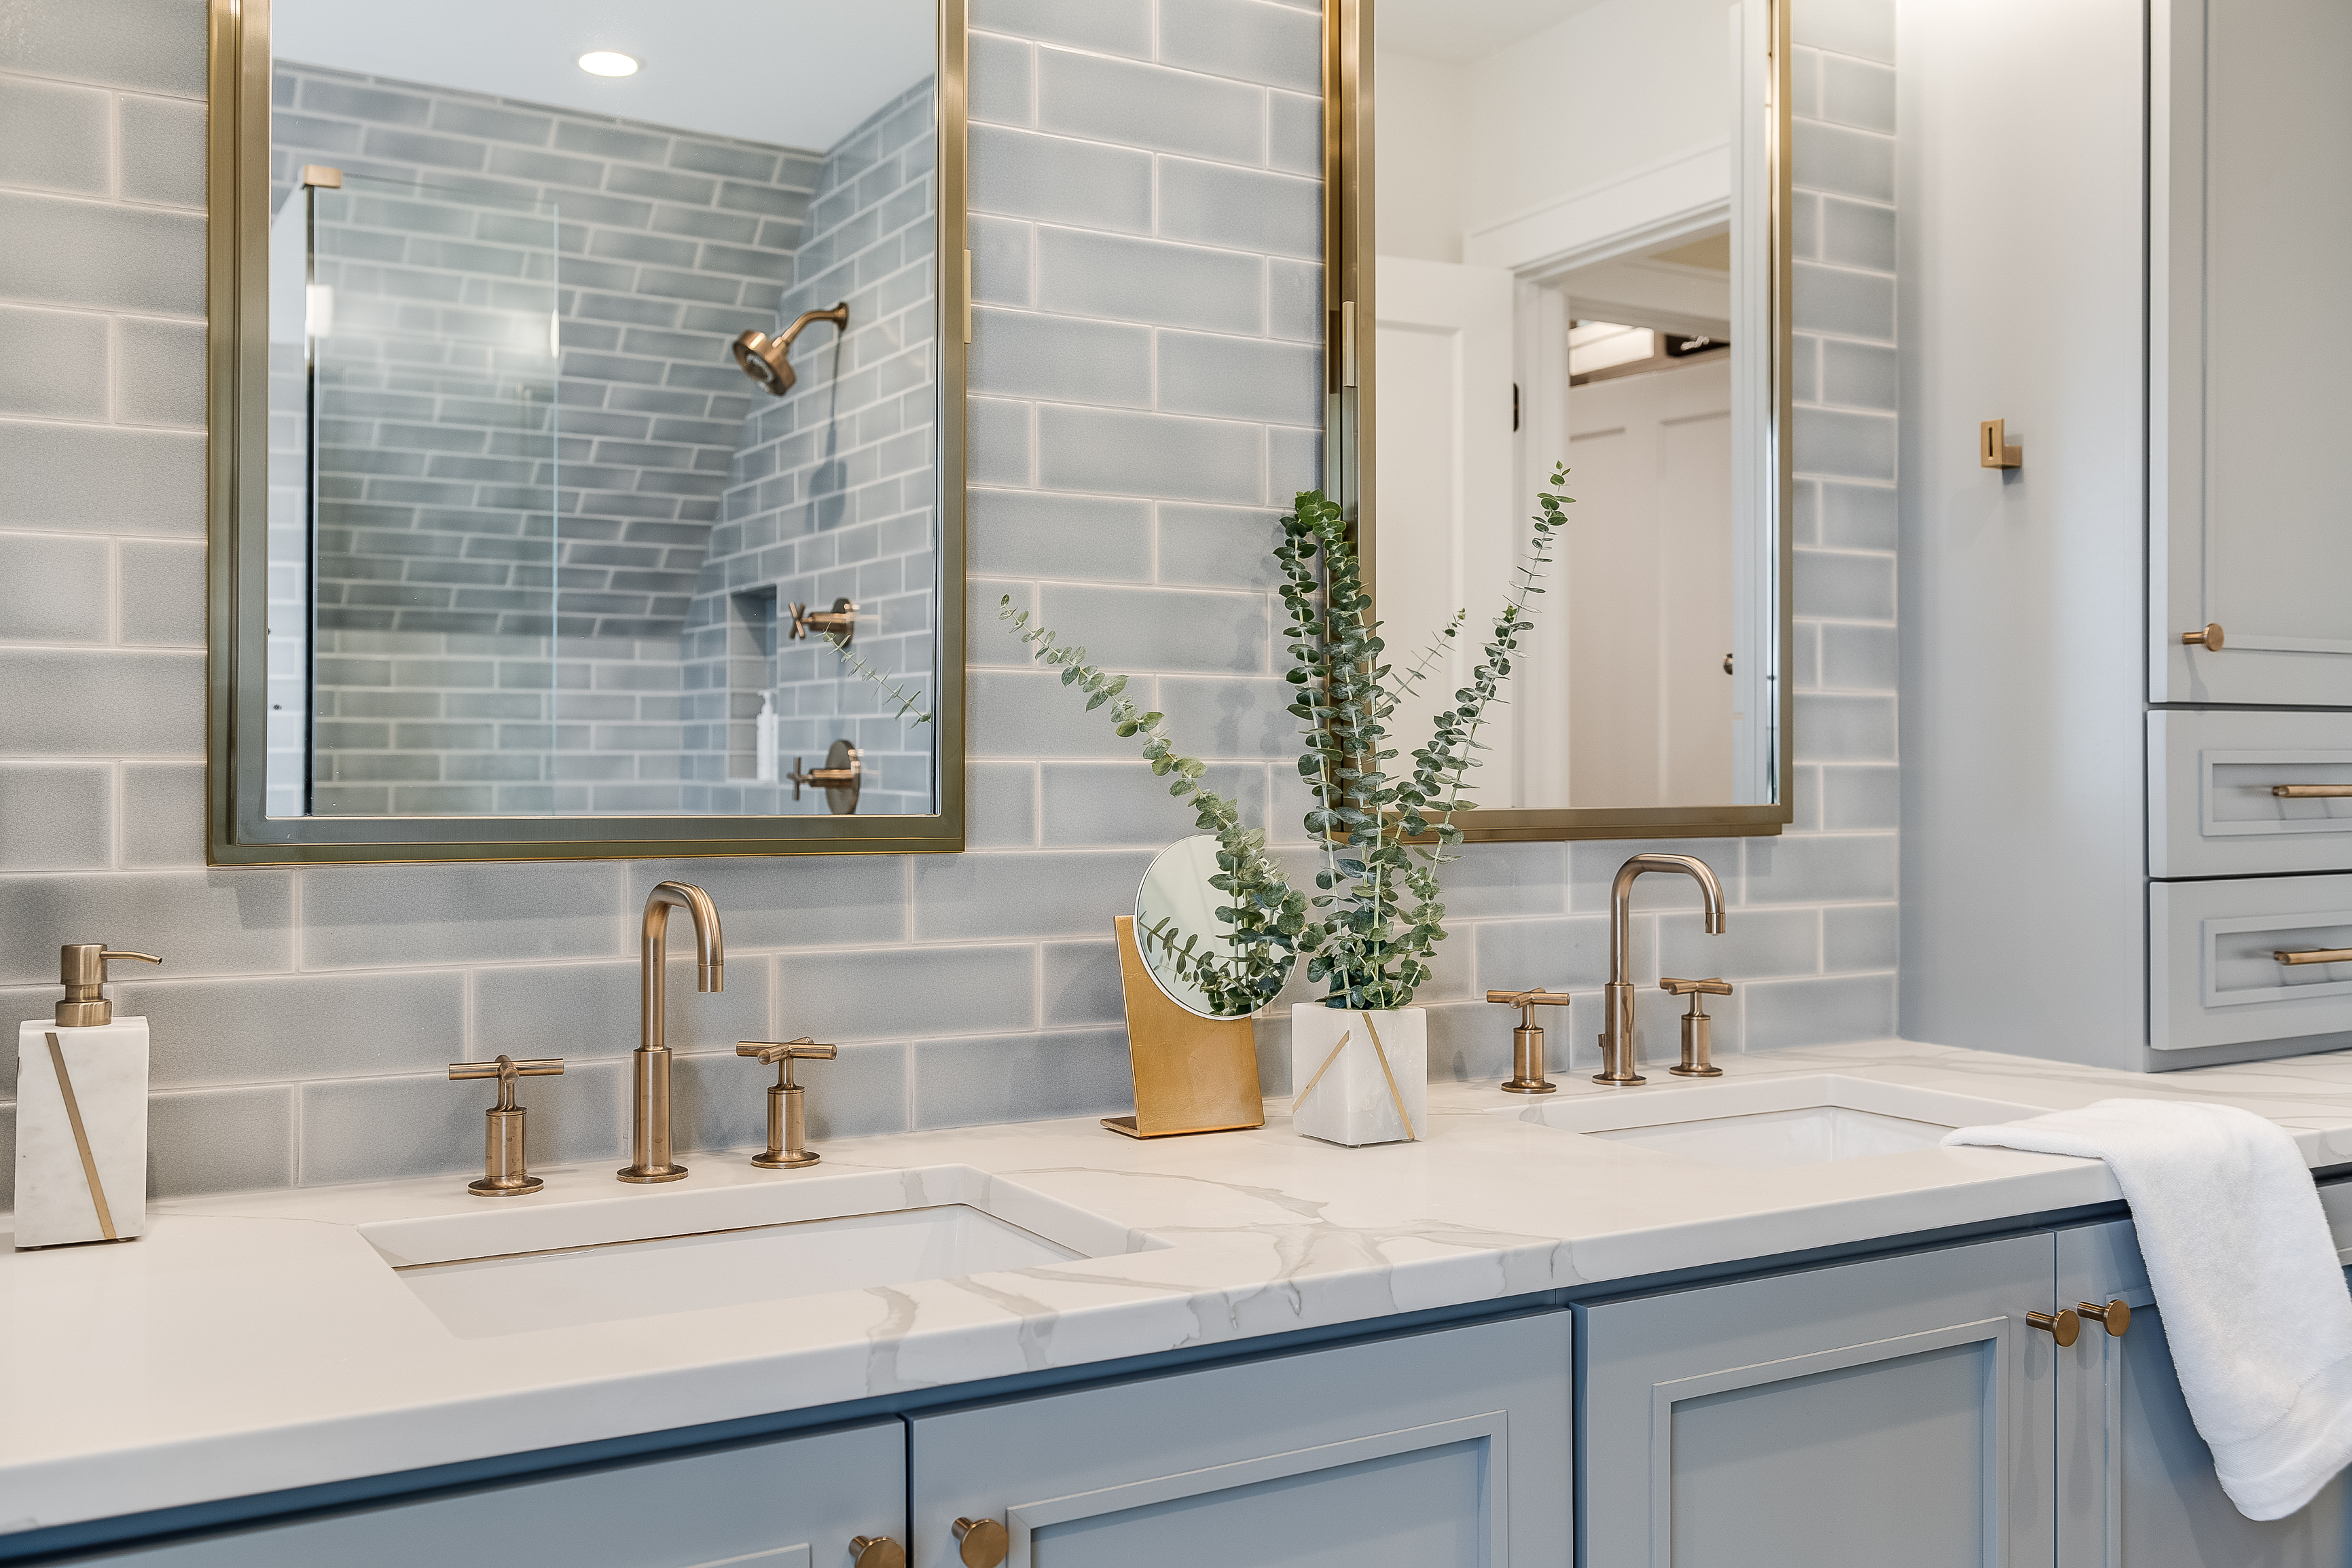 2018_img_q2_hi_res_RIGHTS_FIO_CREATIVE_PHOTO_cara_alyn_interiors_web_hi_resolution_bathroom_shower_surround_and-vanity_accent_wall_foggy_morning_ceramic_3x9_offset_glazed_edge_trim_FC217663_1.jpg?mtime=20190122164958#asset:433435